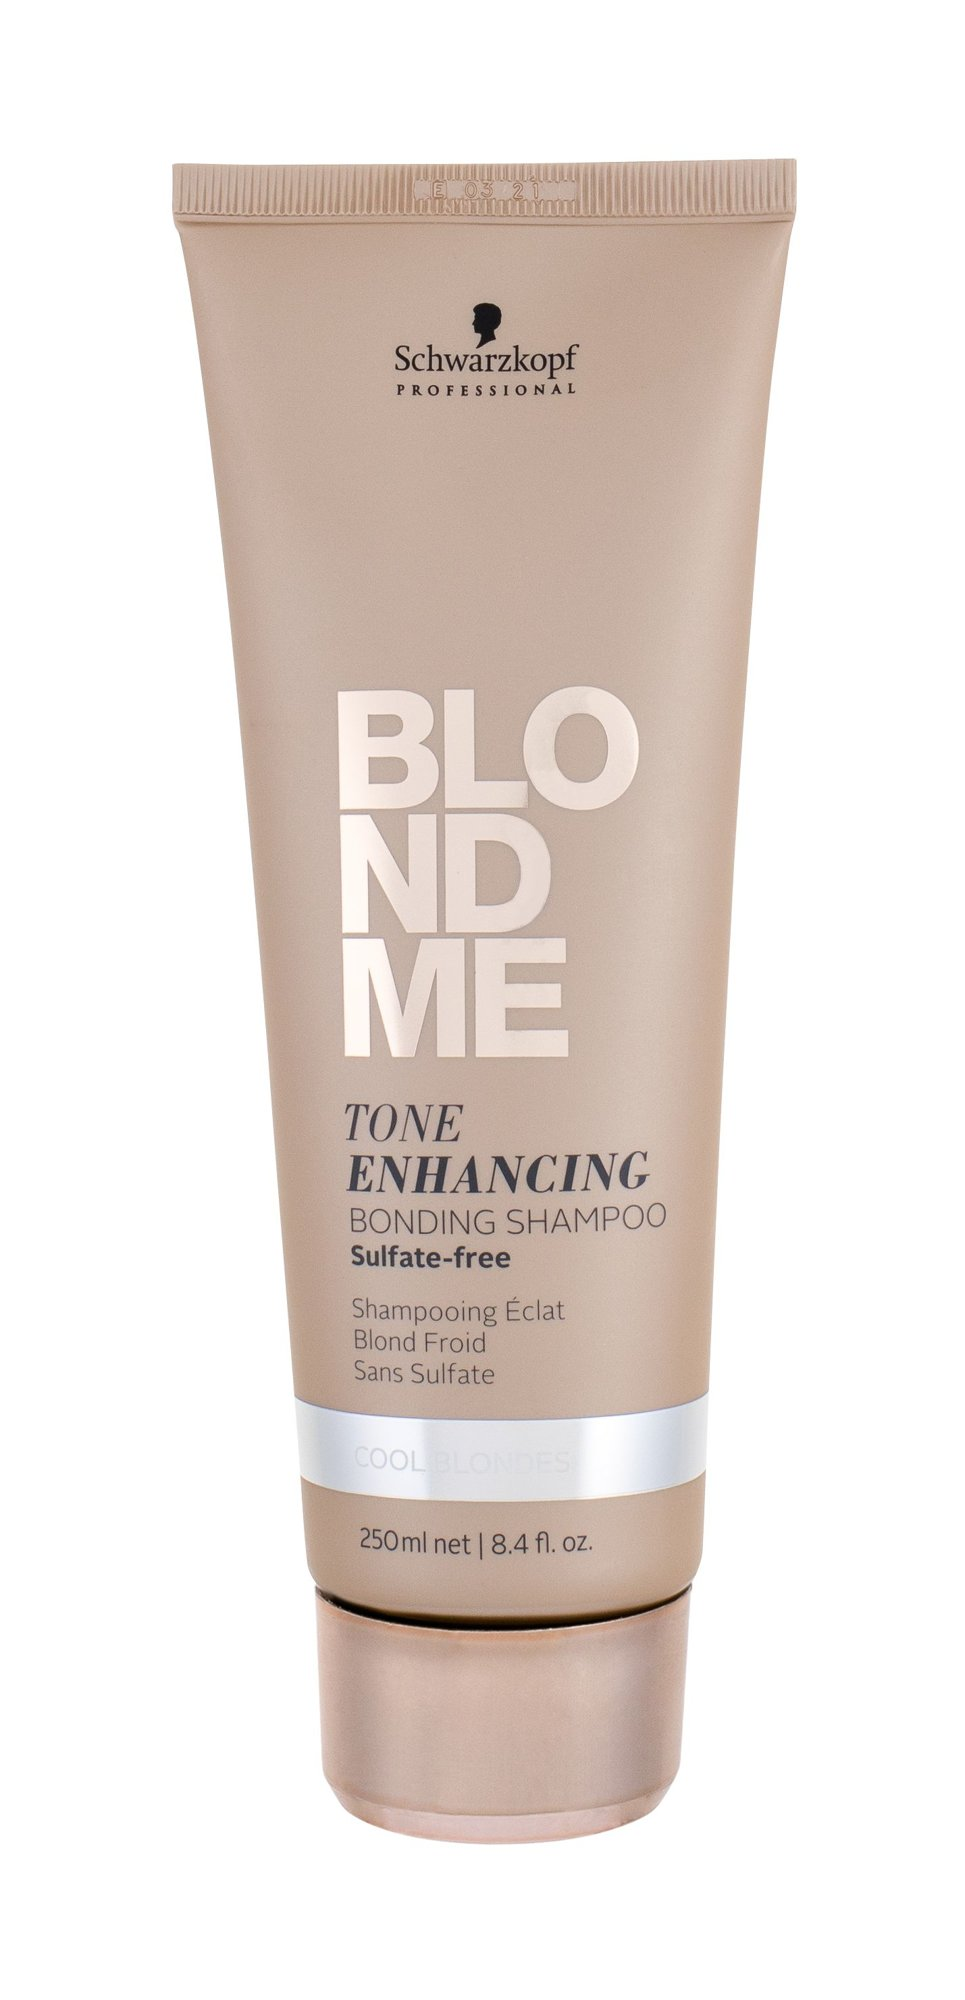 Schwarzkopf Blond Me Shampoo 250ml Cool Blondes